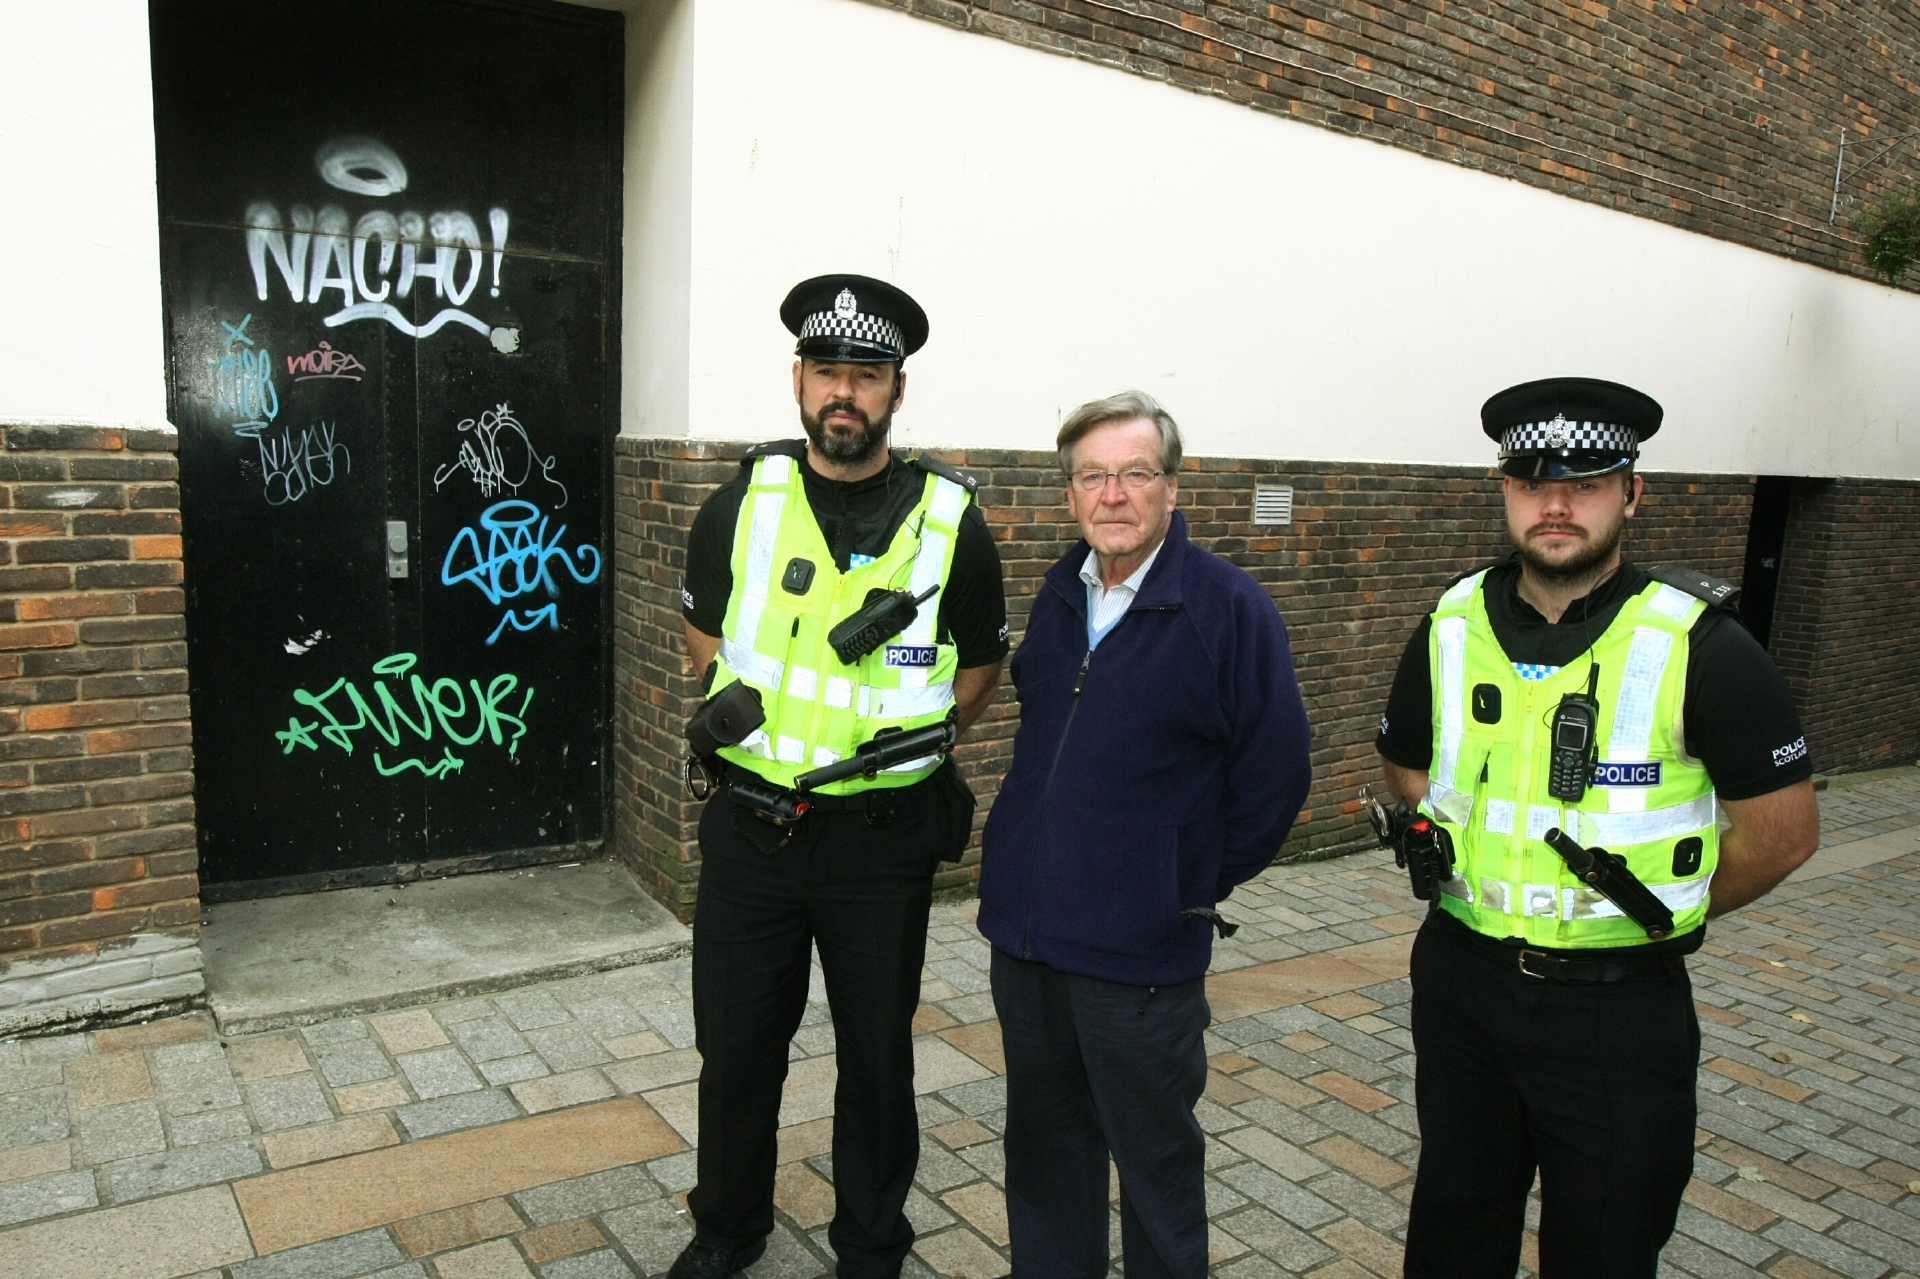 L-R: Constable Mark McCulloch, David Henderson - Chairman of Kirkcaldy West Community Council and Constable Cameron Lee beside some of the graffiti in Bell Inn Wynd, Kirkcaldy.